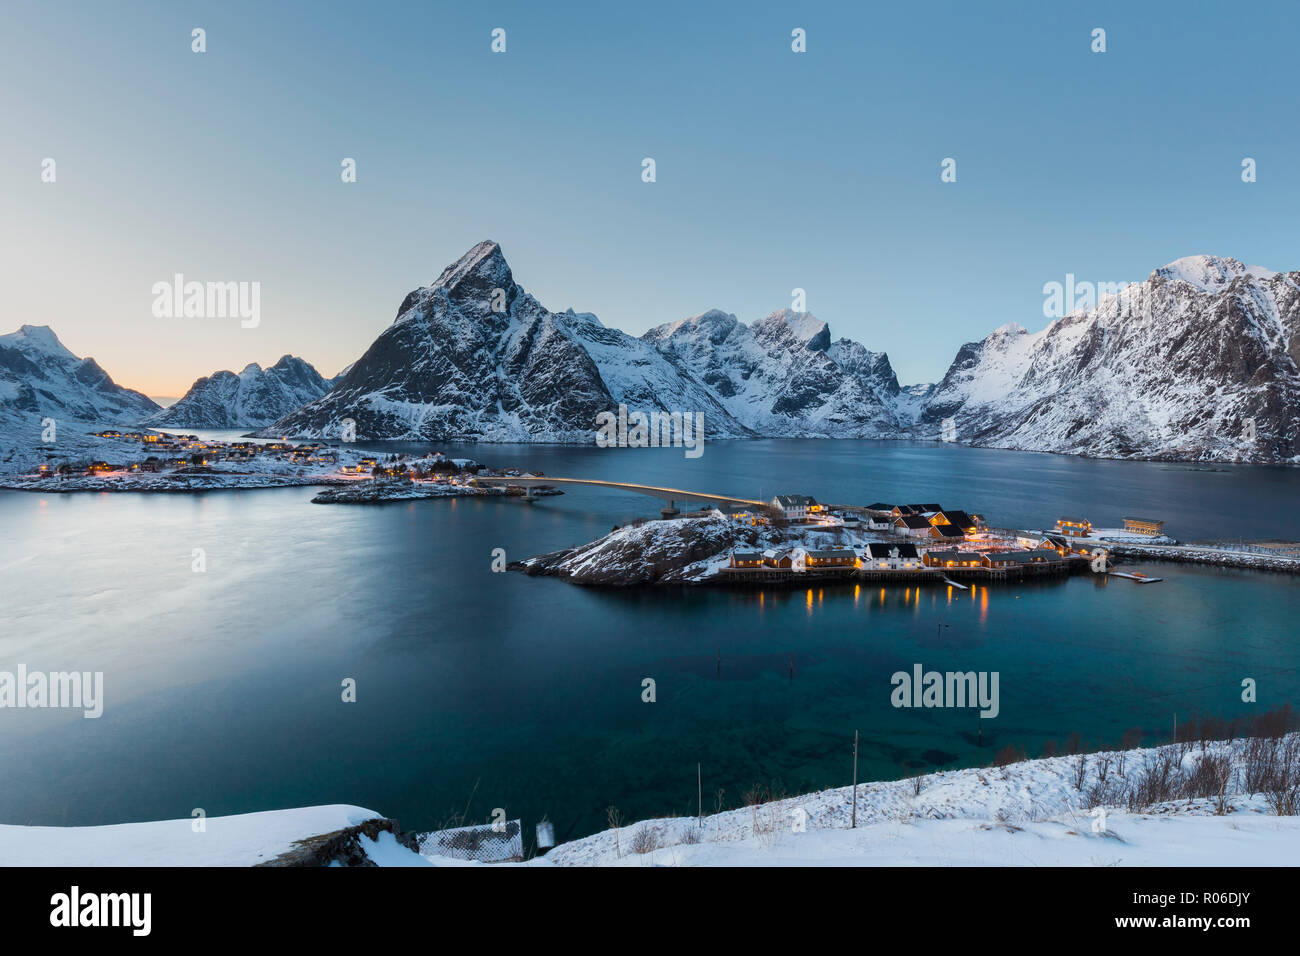 Twilight landscape with illuminated fisherman's cabins at the Sakrisøy Rorbuer in Lofoten, Norway. Winter  scenery with snow-covered mountains. - Stock Image